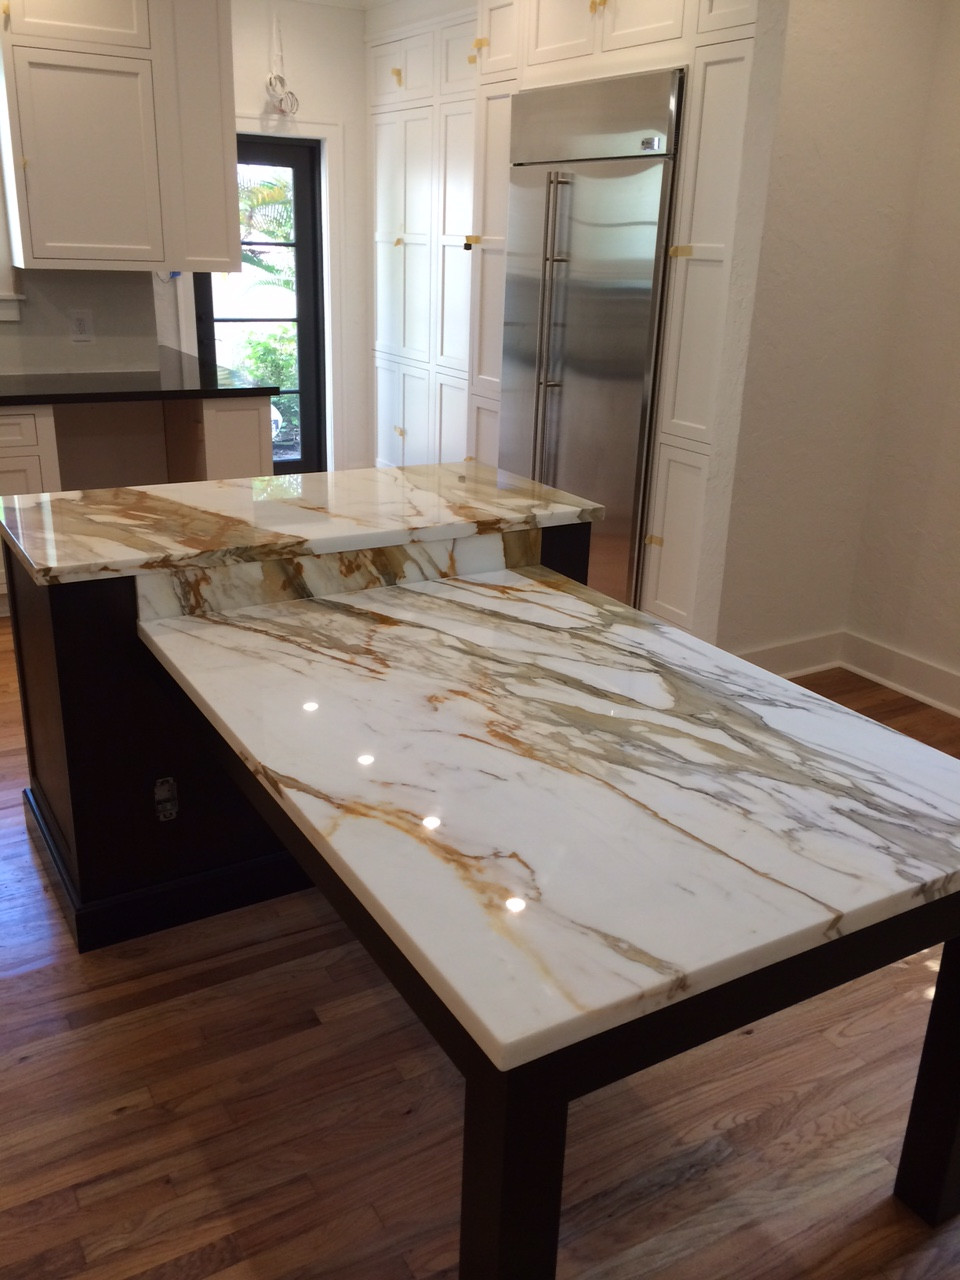 Kochschule Bremen Https://www.houzz.com/photos/brown-quartz-kitchen-tops-and-calacatta-gold-marble-island-contemporary-kitchen-miami-phvw-vp~37850586